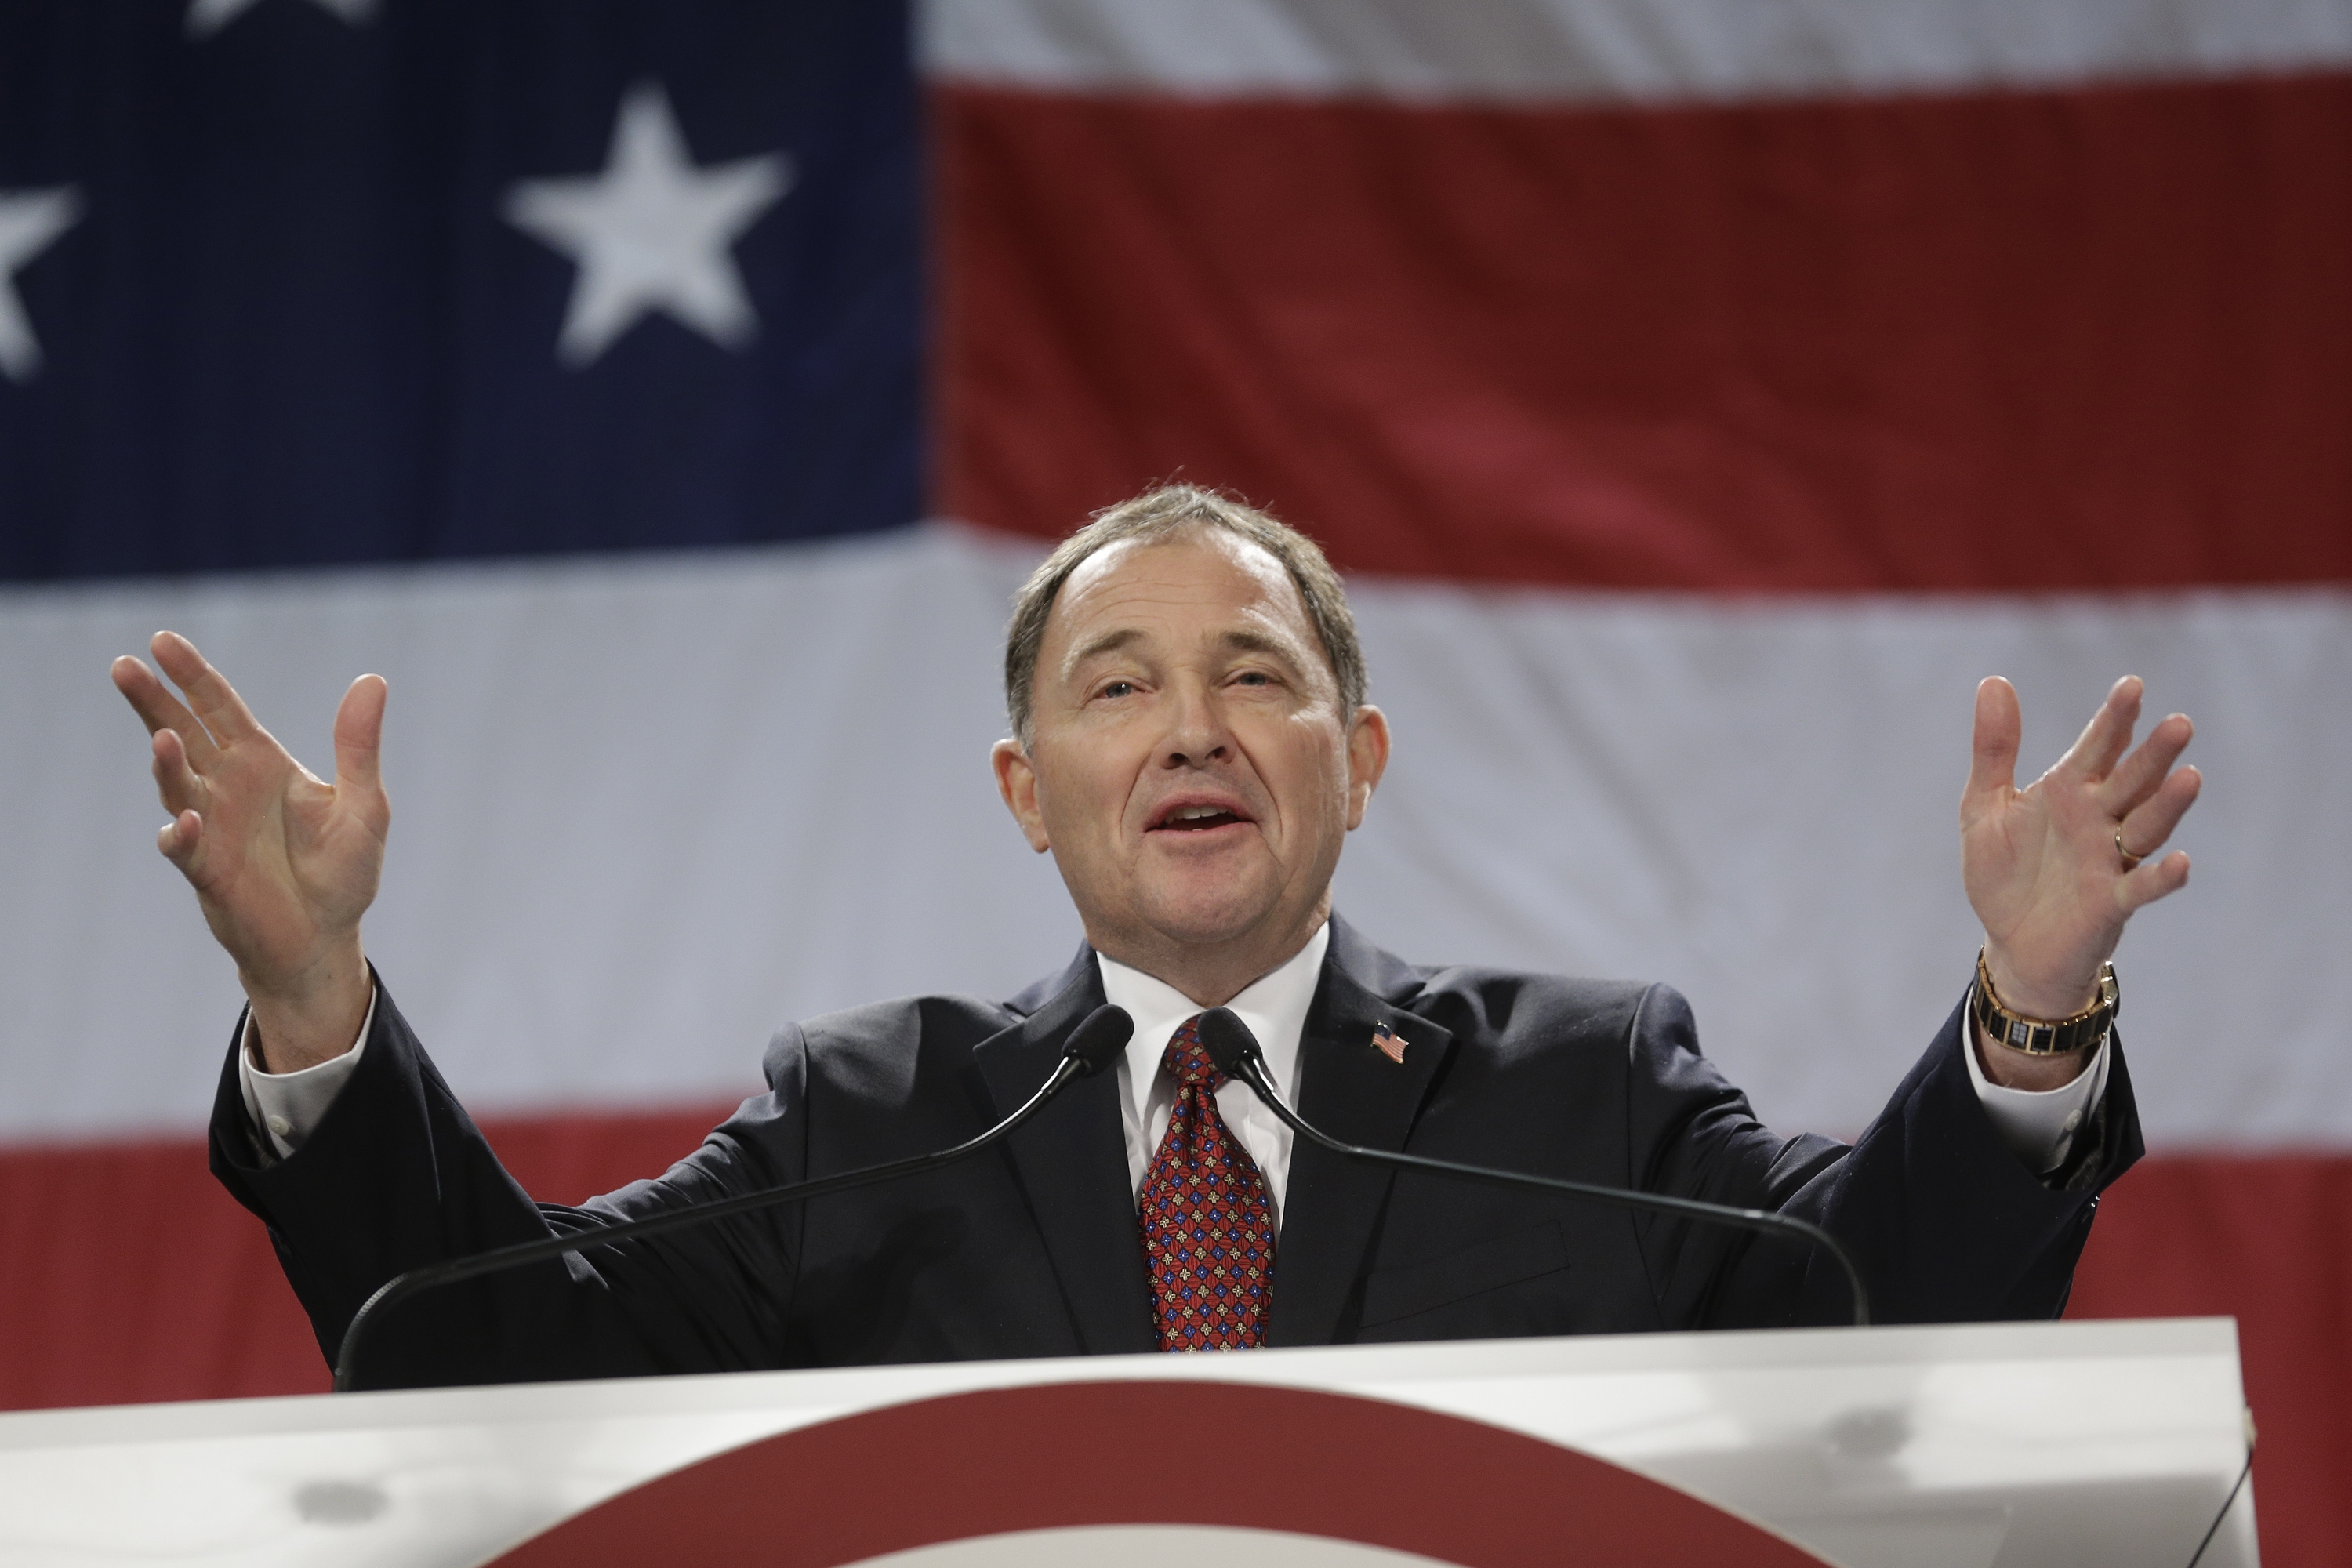 Utah Gov. Gary Herbert addresses delegates during the Utah Republican Party nominating convention in Sandy (April 26, 2014 file photo).